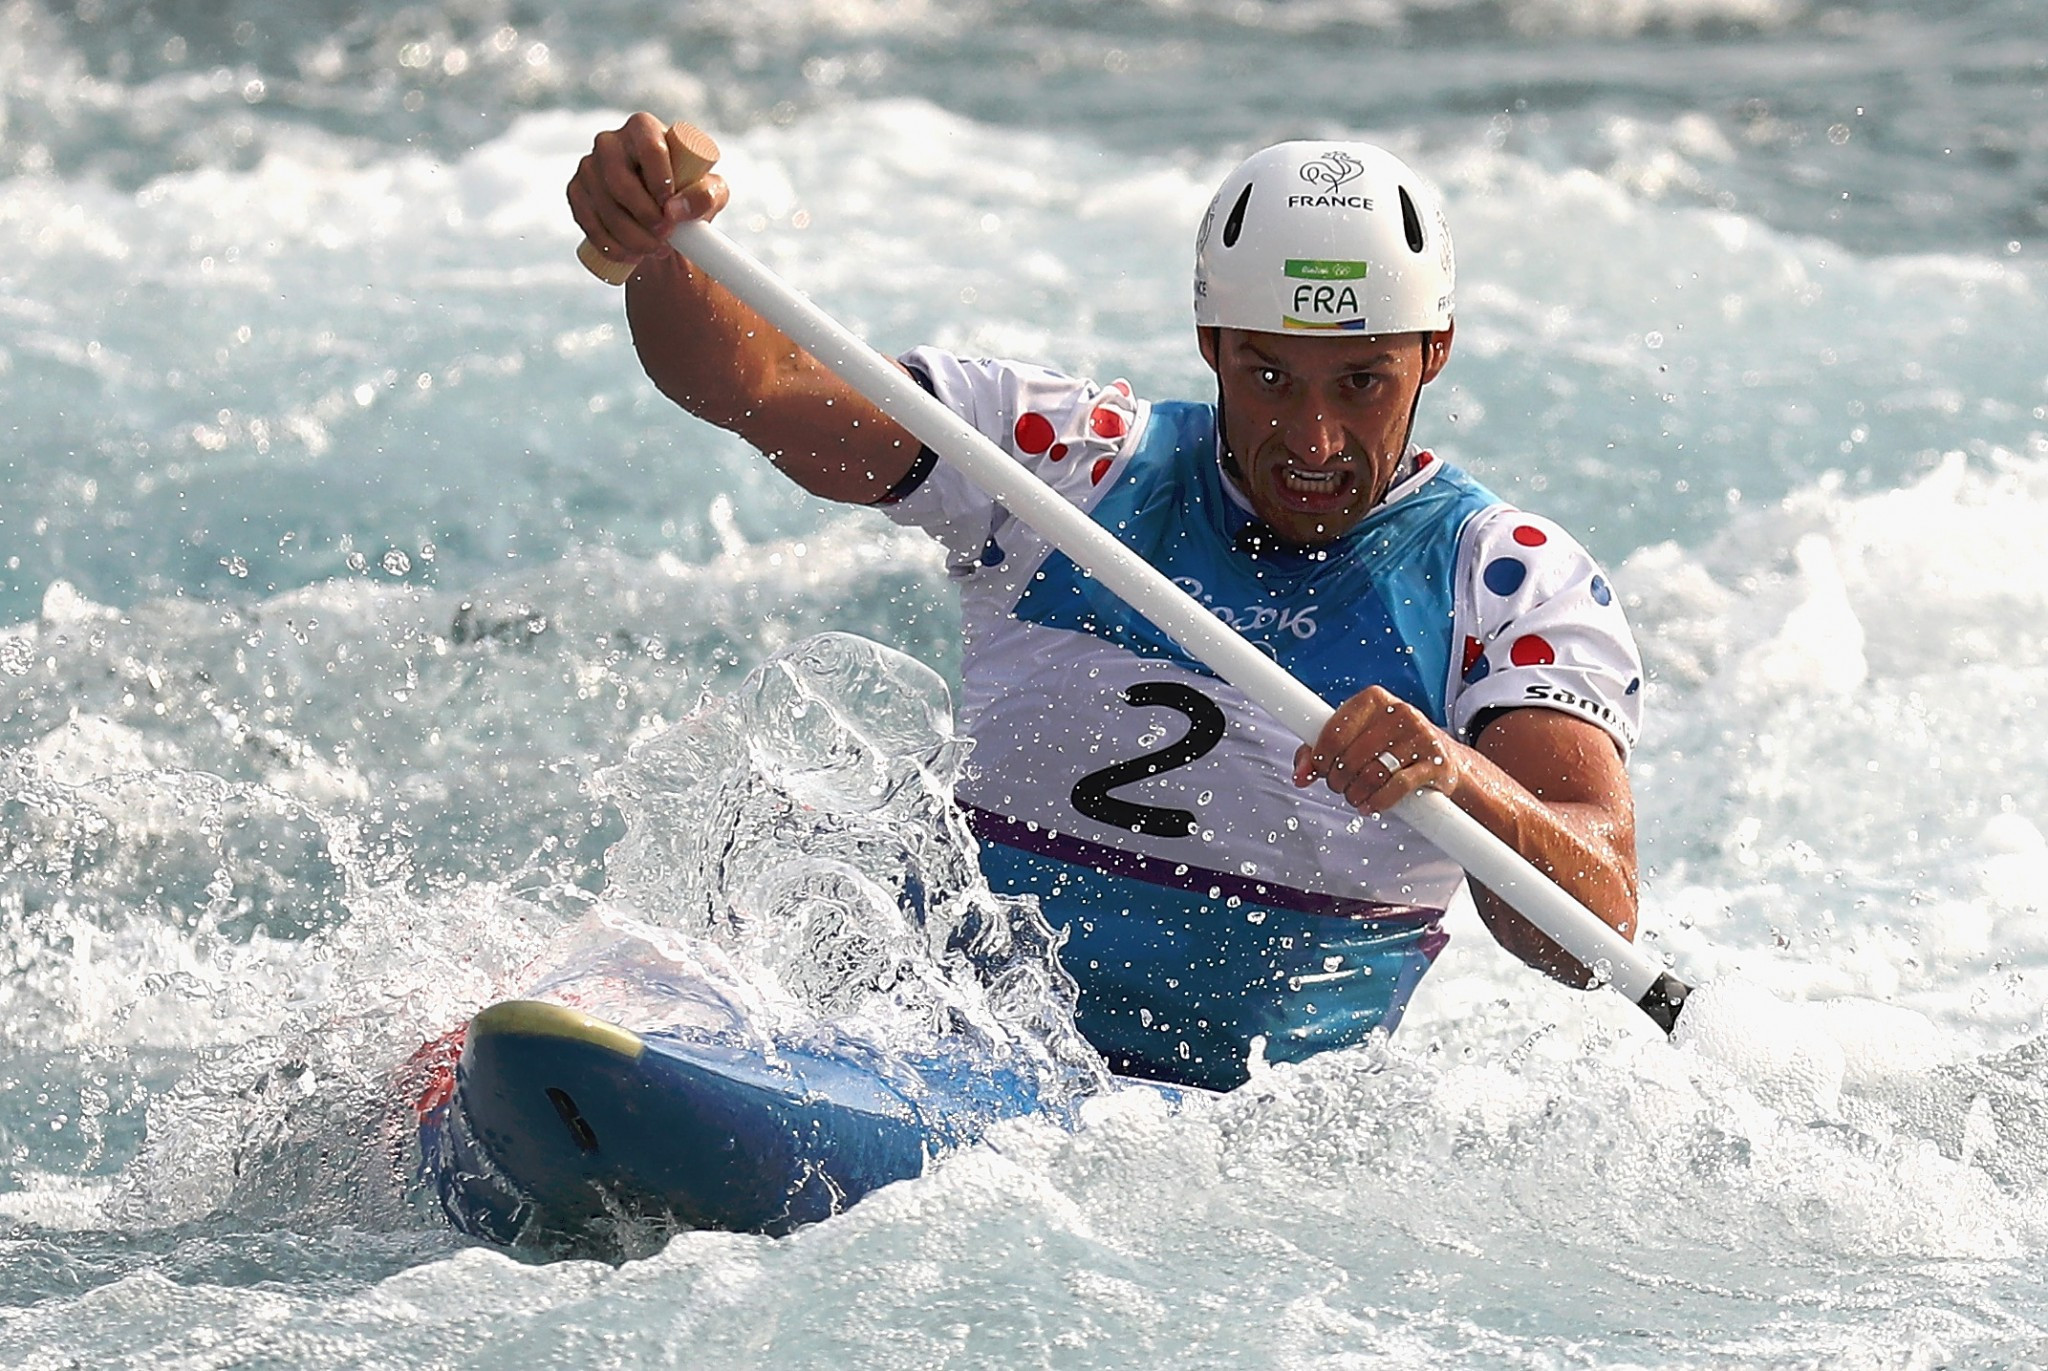 Olympic canoe slalom champions do it the hard way on Barcelona 1992 World Cup course